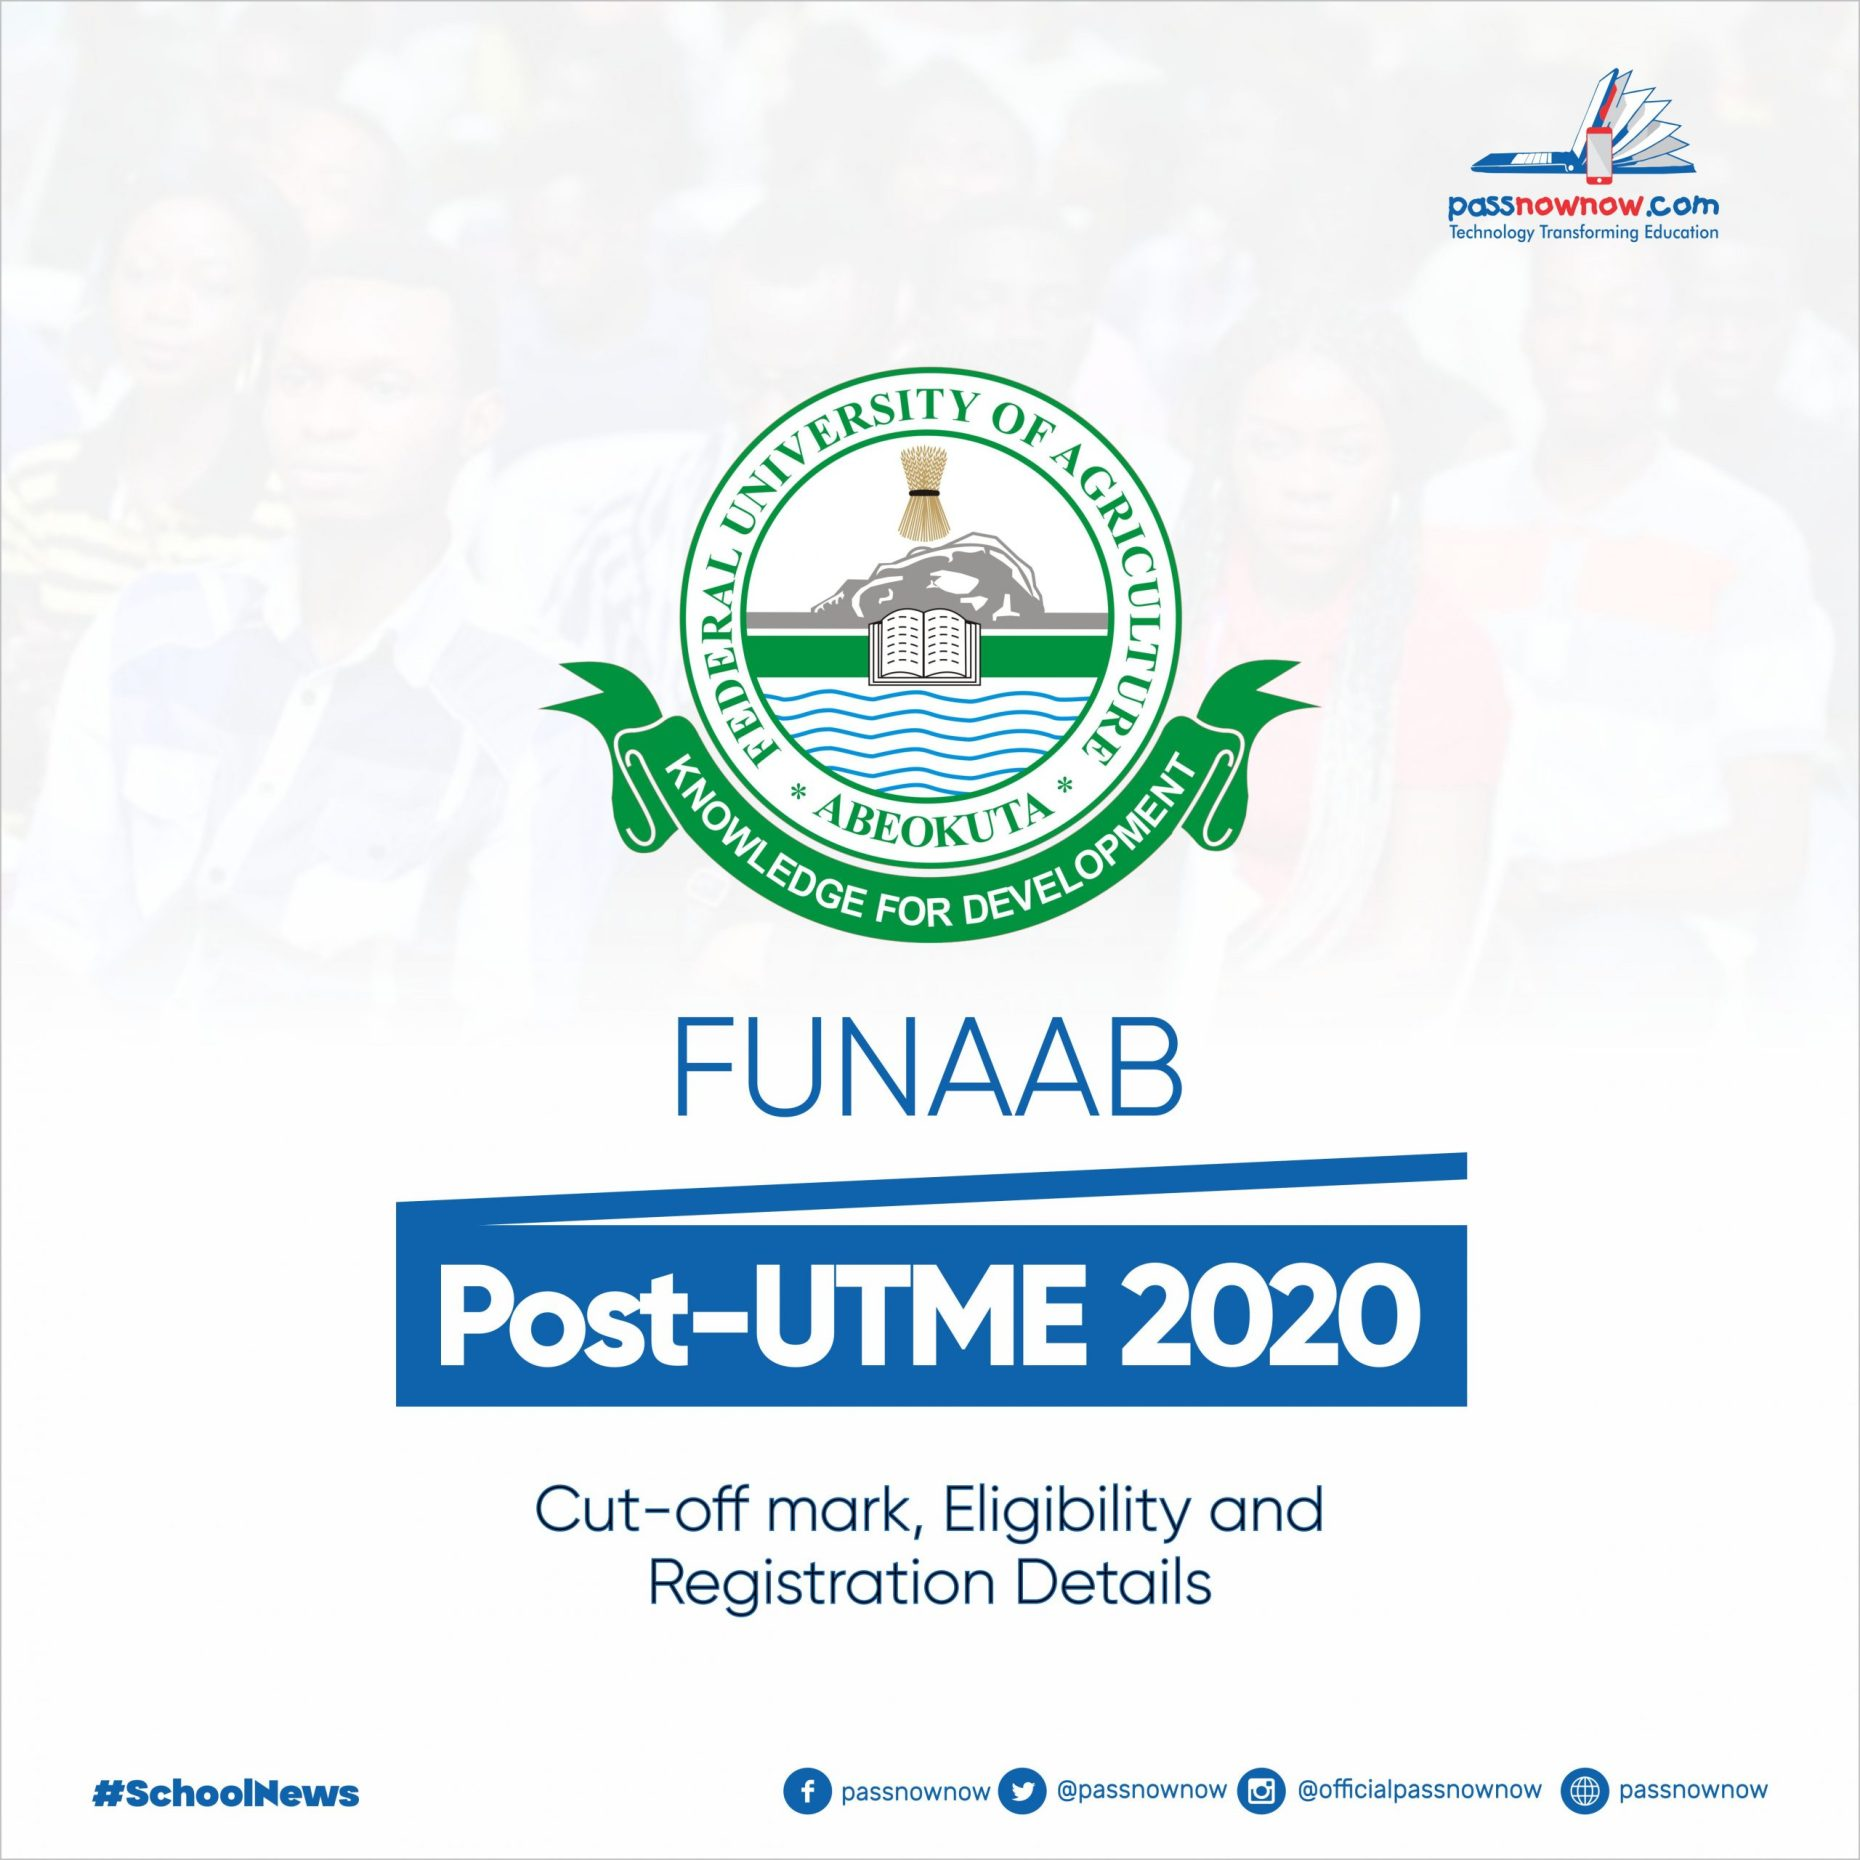 FUNAAB Post-UTME 2020: Cut-off mark, Eligibility and Registration Details